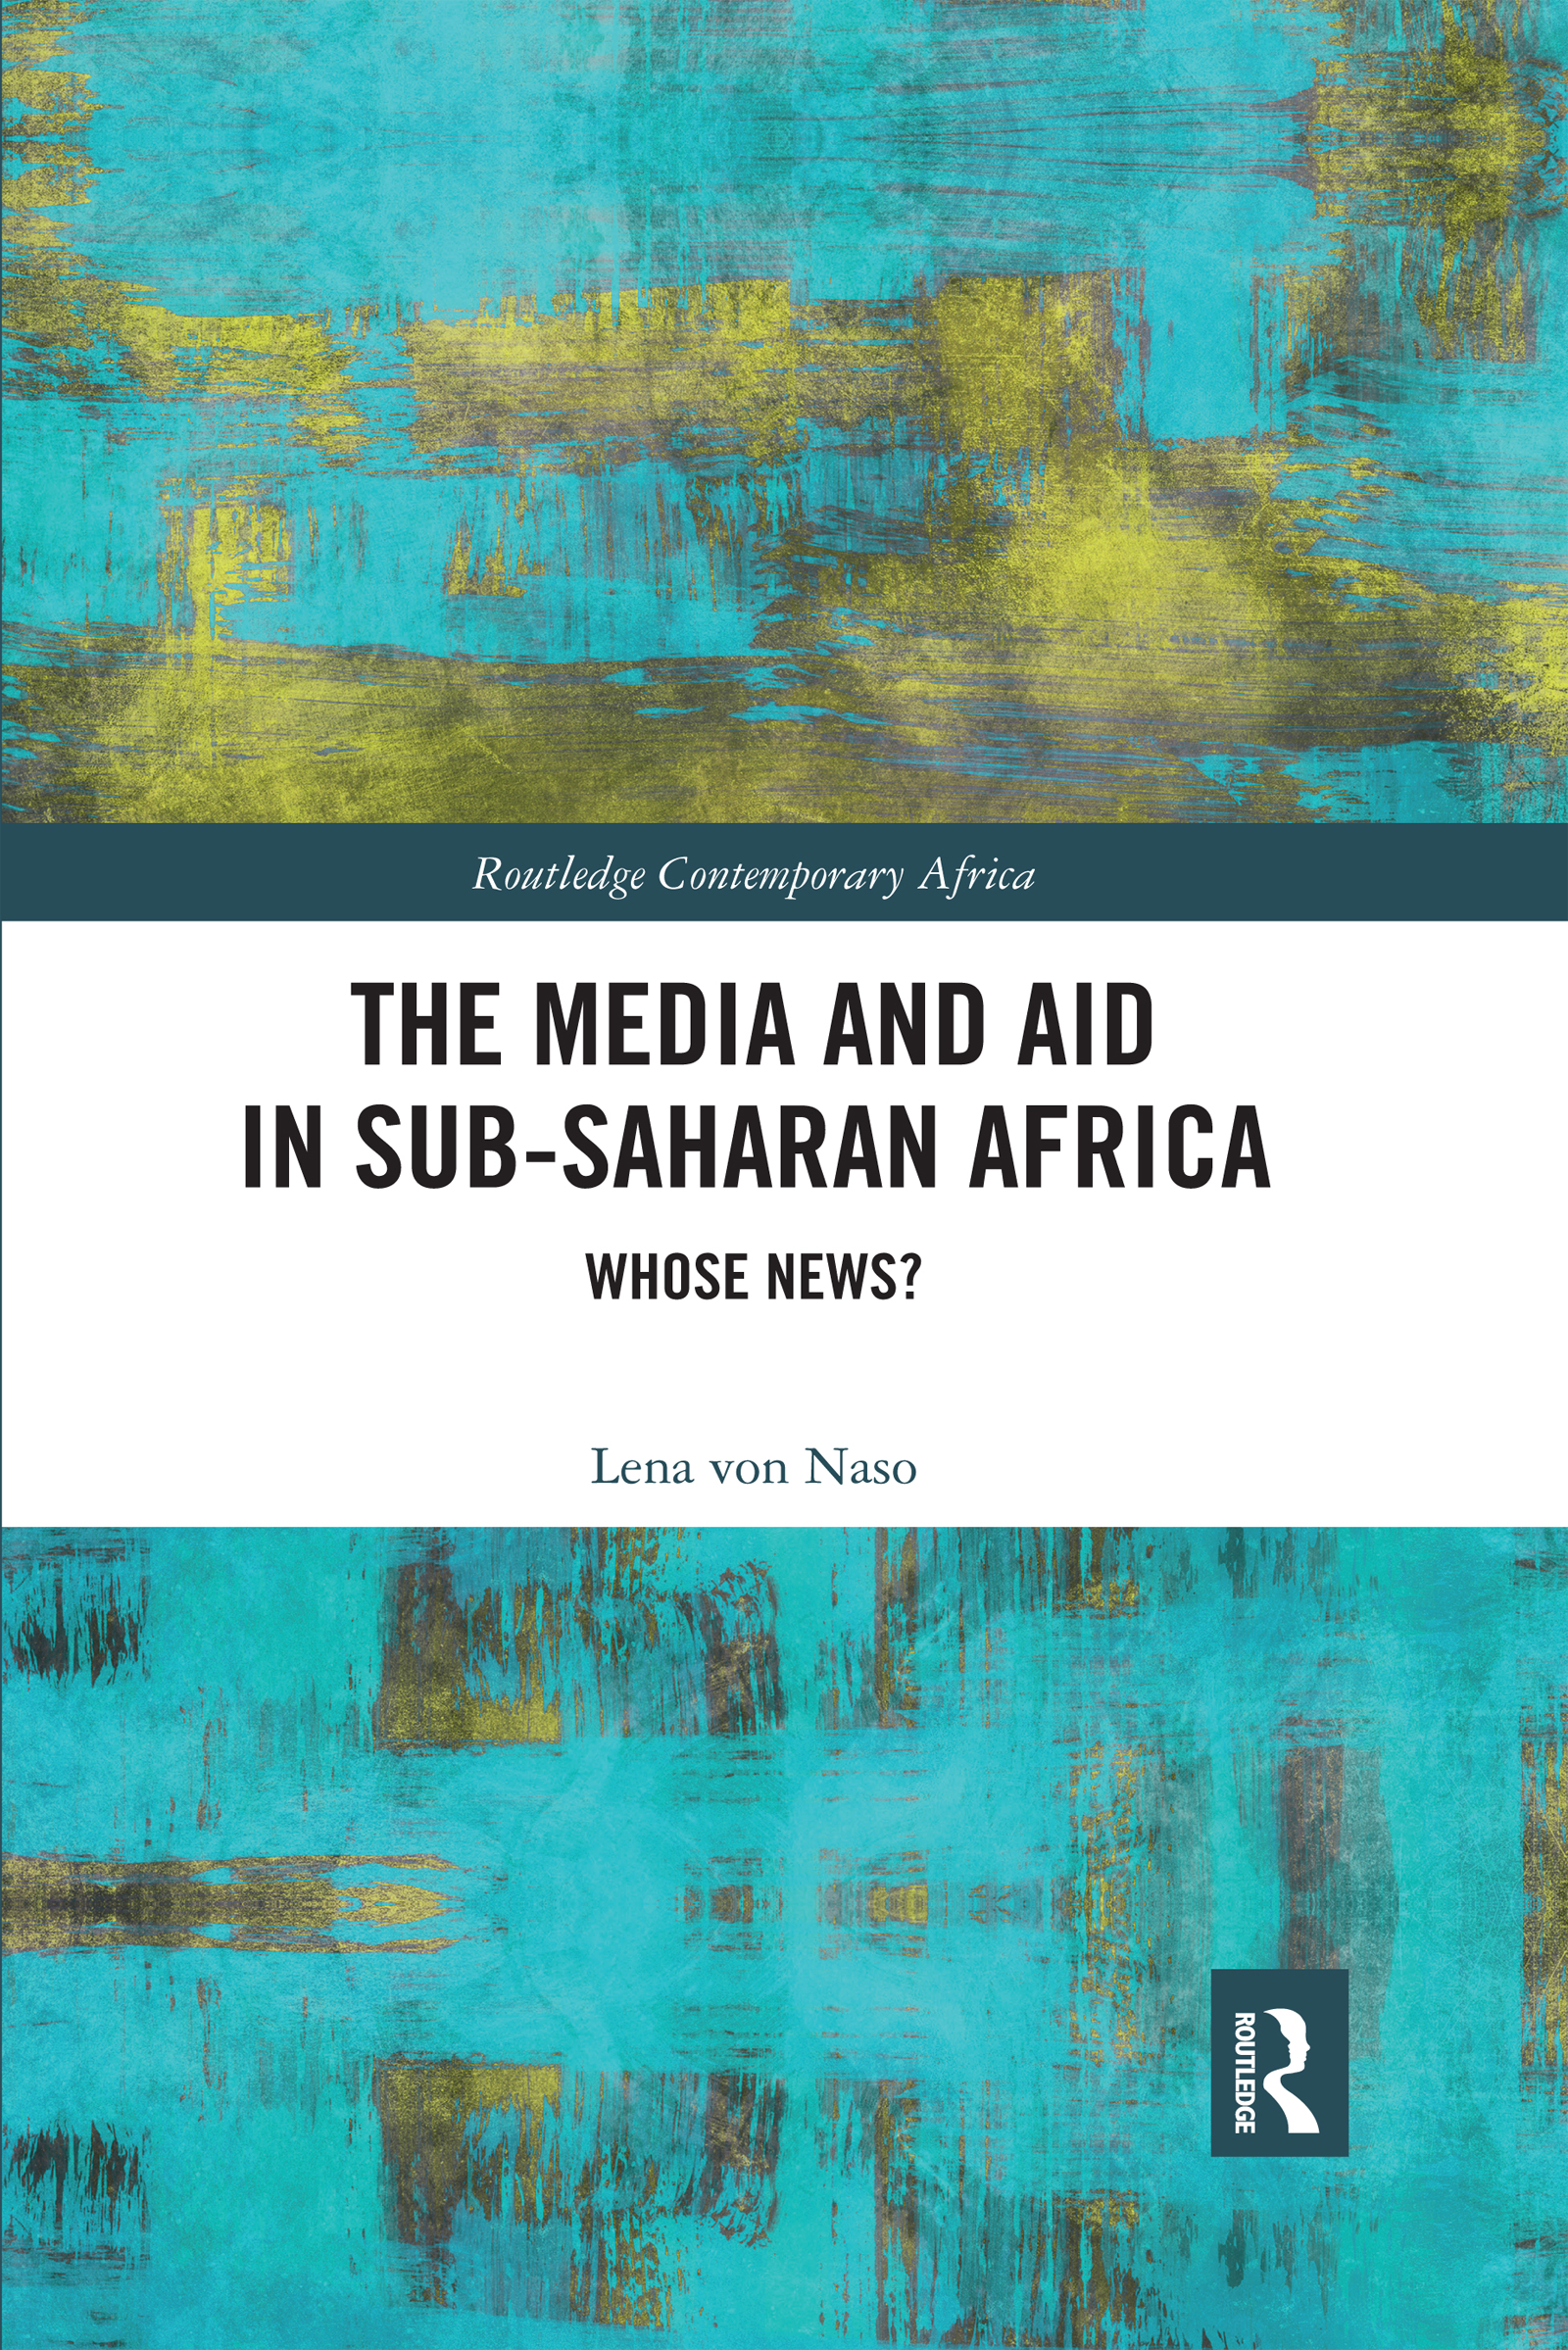 The Media and Aid in Sub-Saharan Africa